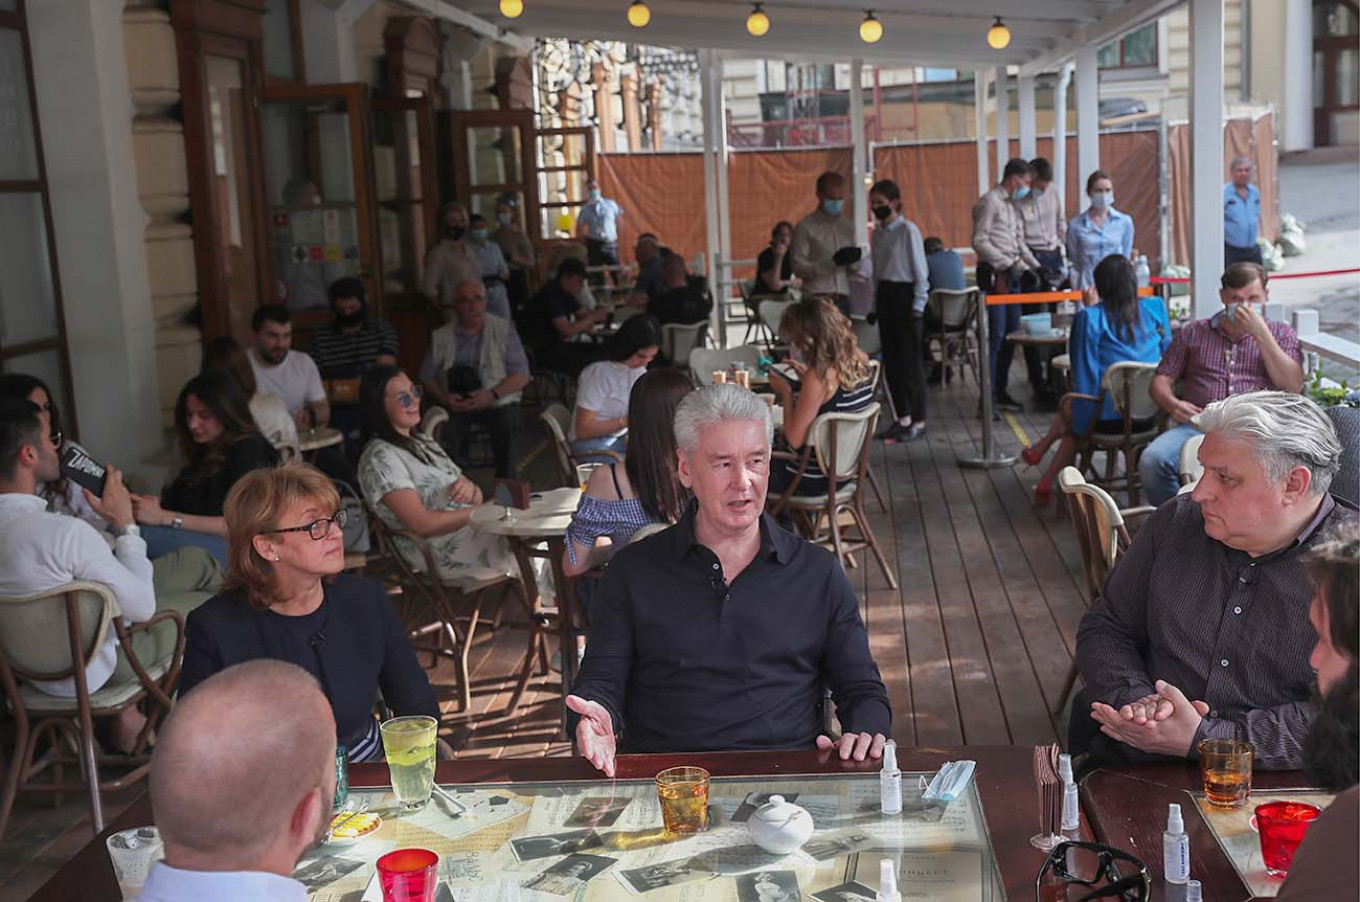 Moscow Mayor Sergei Sobyanin, Chief Sanitary Physician Yelena Andreyeva and Russian Federation of Restaurateurs and Hoteliers President Igor Bukharov hold a meeting on the first day when restaurants could open summer terraces in mid-June.				 				Vladimr Gerdo / TASS